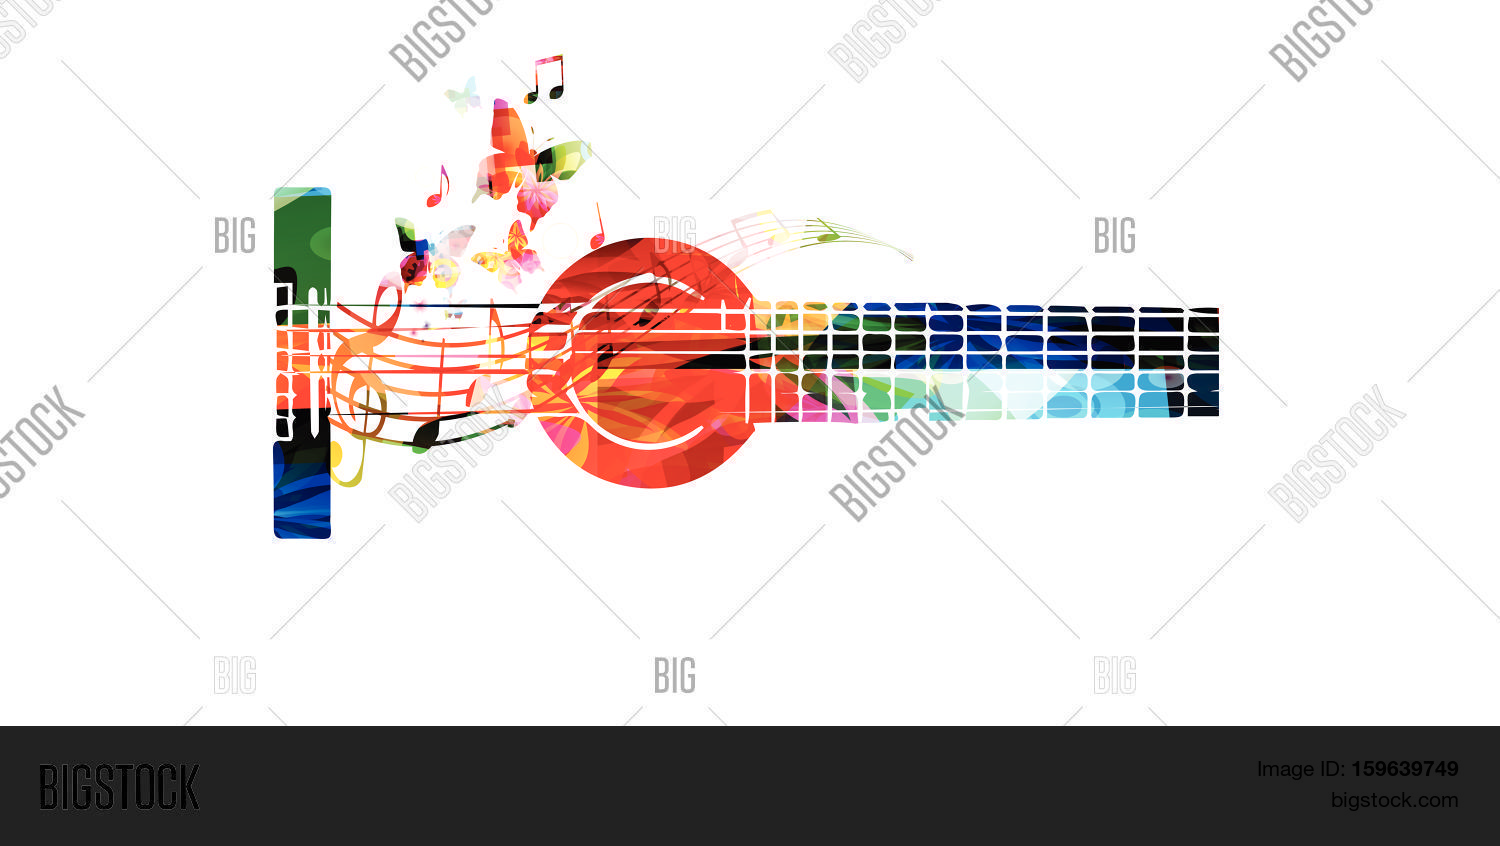 Poster design notes - Colorful Guitar With Music Notes Vector Illustration Music Background Music Instrument Poster Guitar